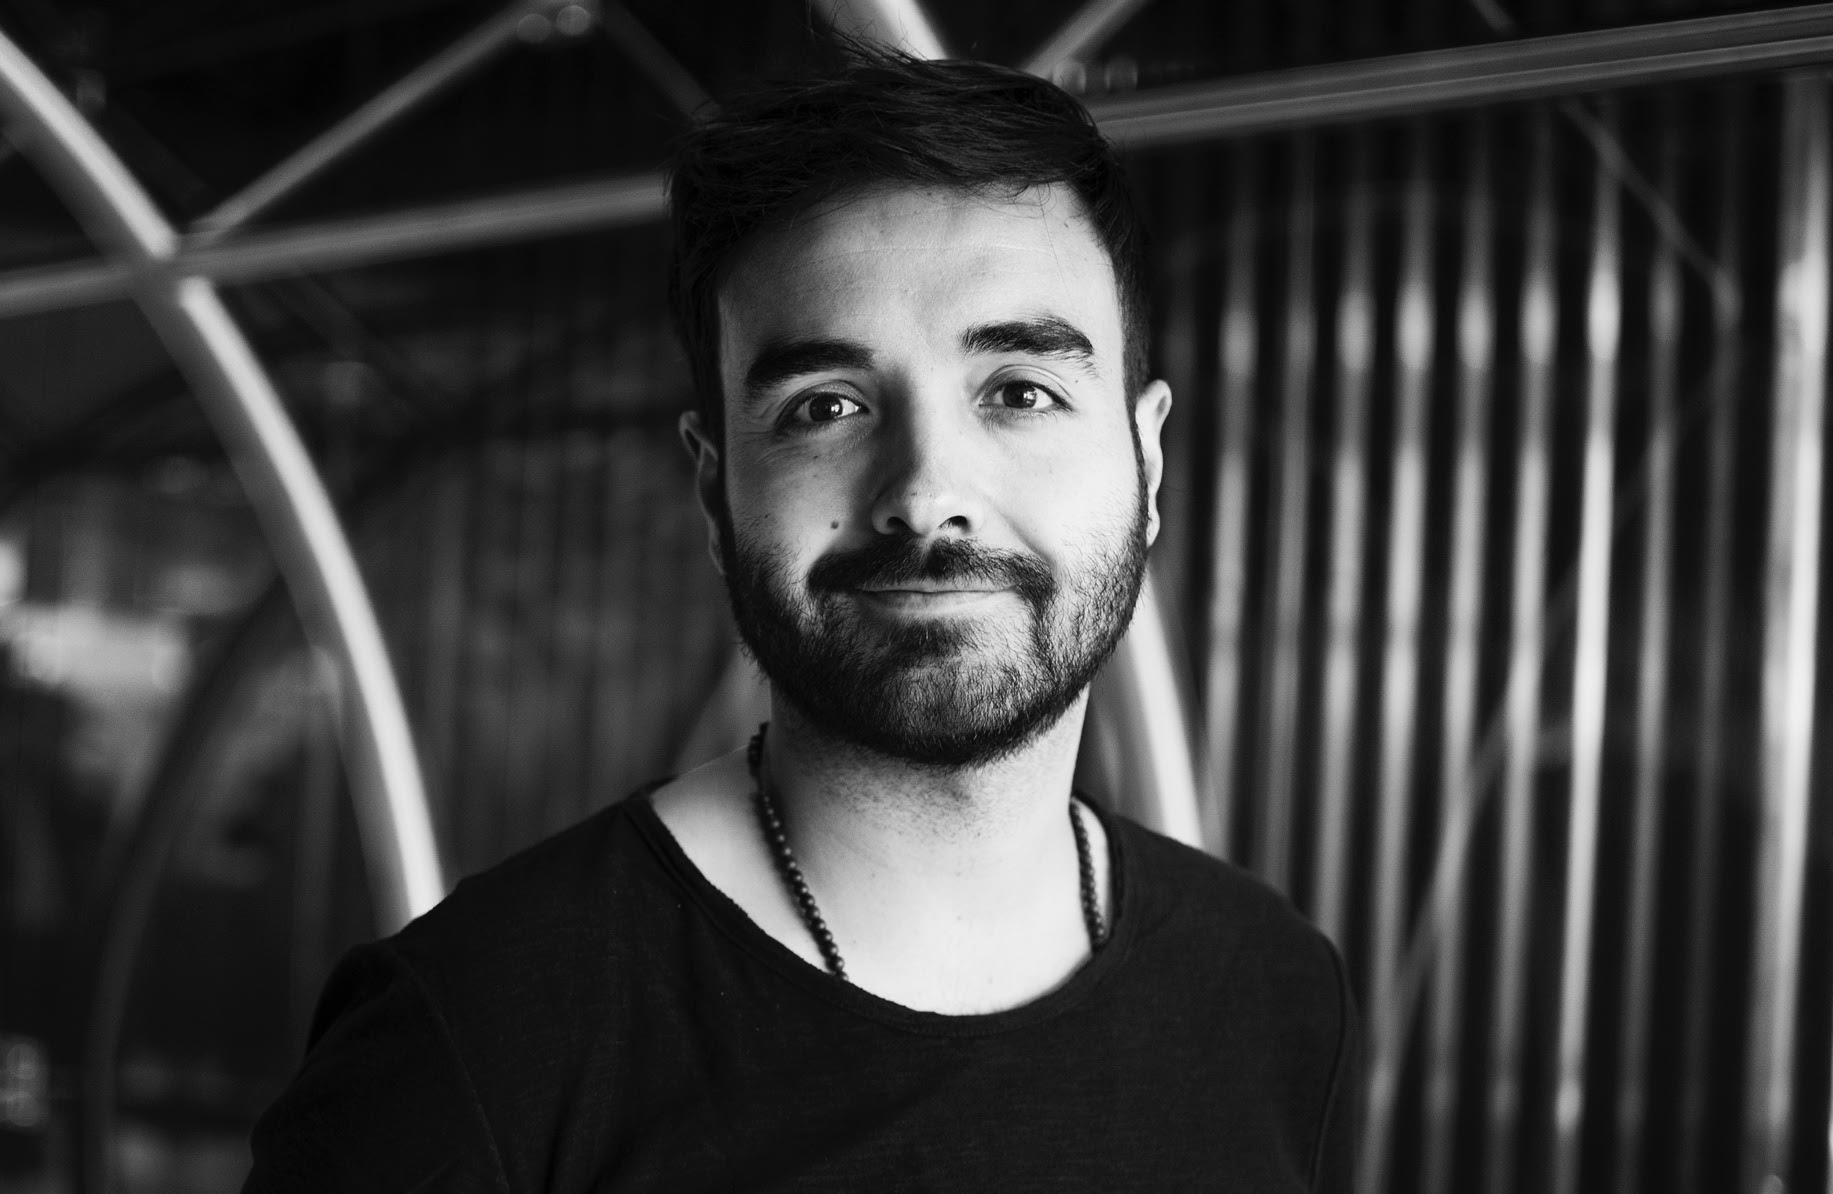 manuel-bord-promoted-to-global-chief-creative-officer-of-geometryvmlyr-commerce